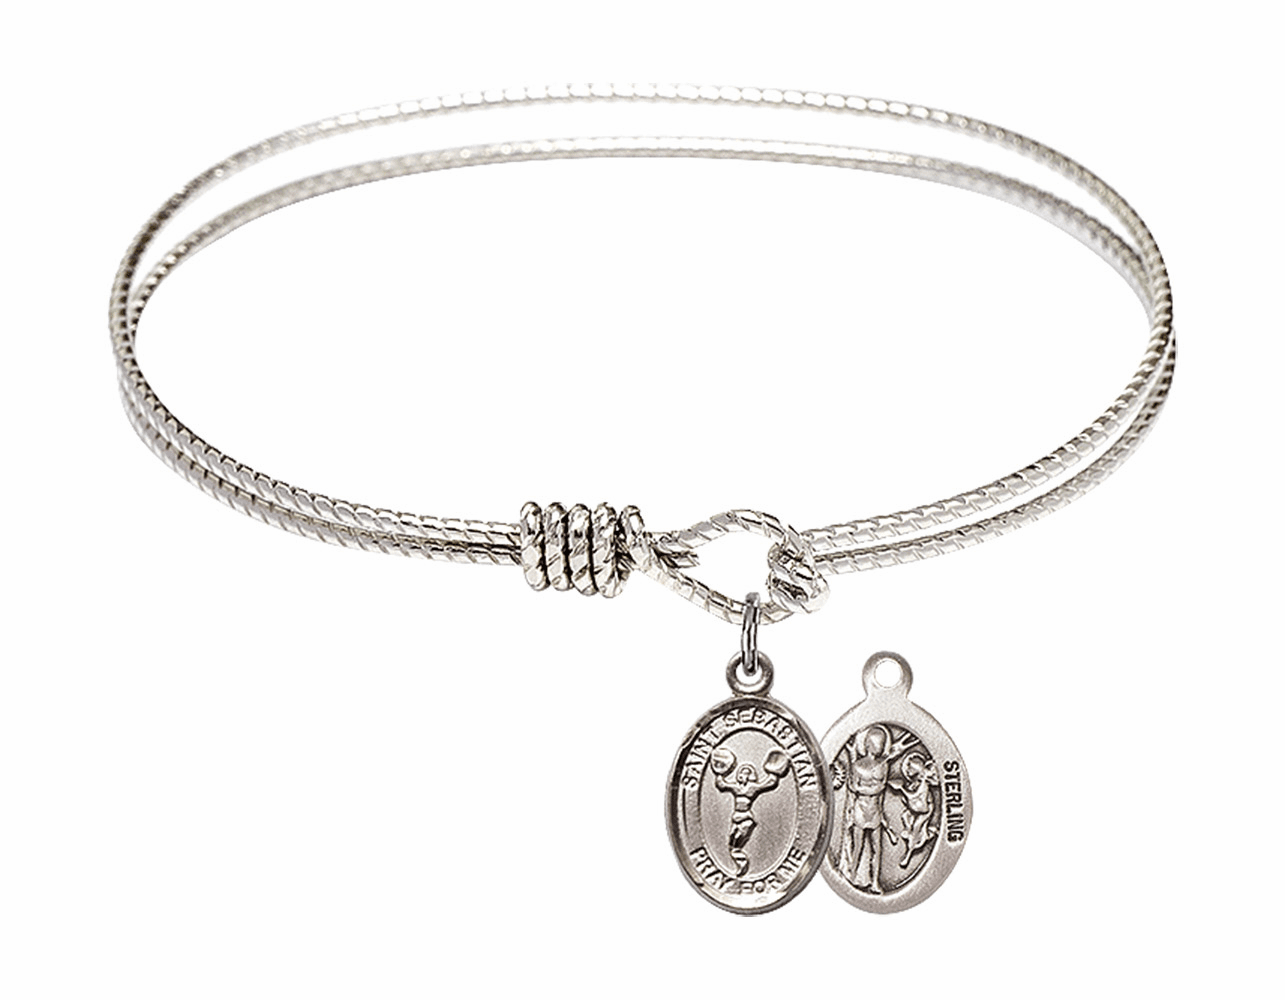 Twist Round Eye Hook St Sebastian Cheerleading Bangle Charm Bracelet by Bliss